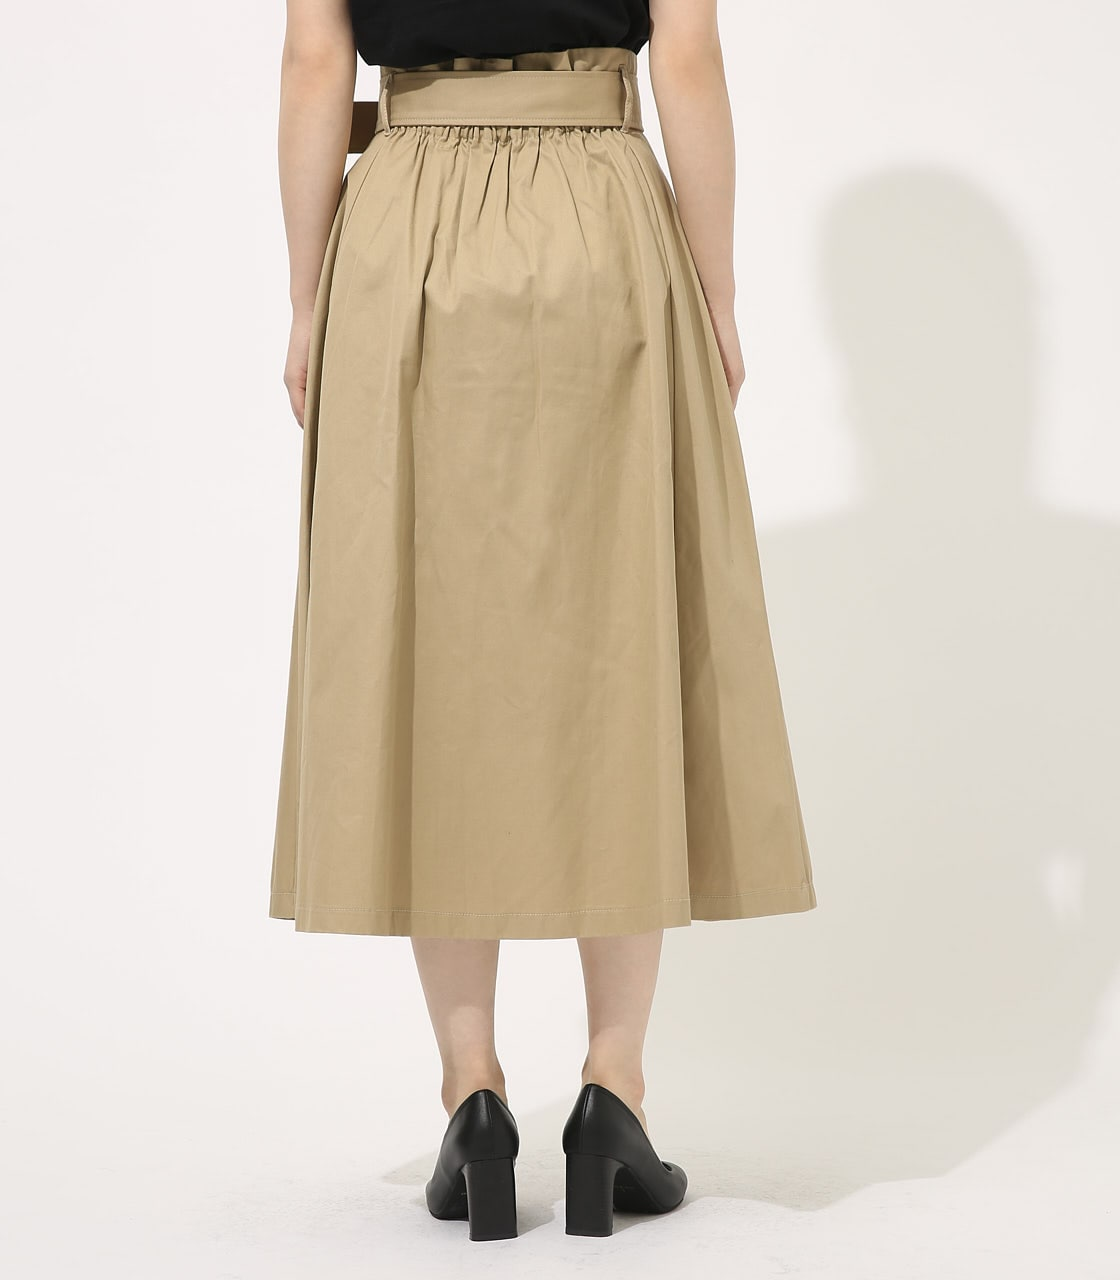 【AZUL BY MOUSSY】TRENCH FLARE SKIRT 詳細画像 BEG 6